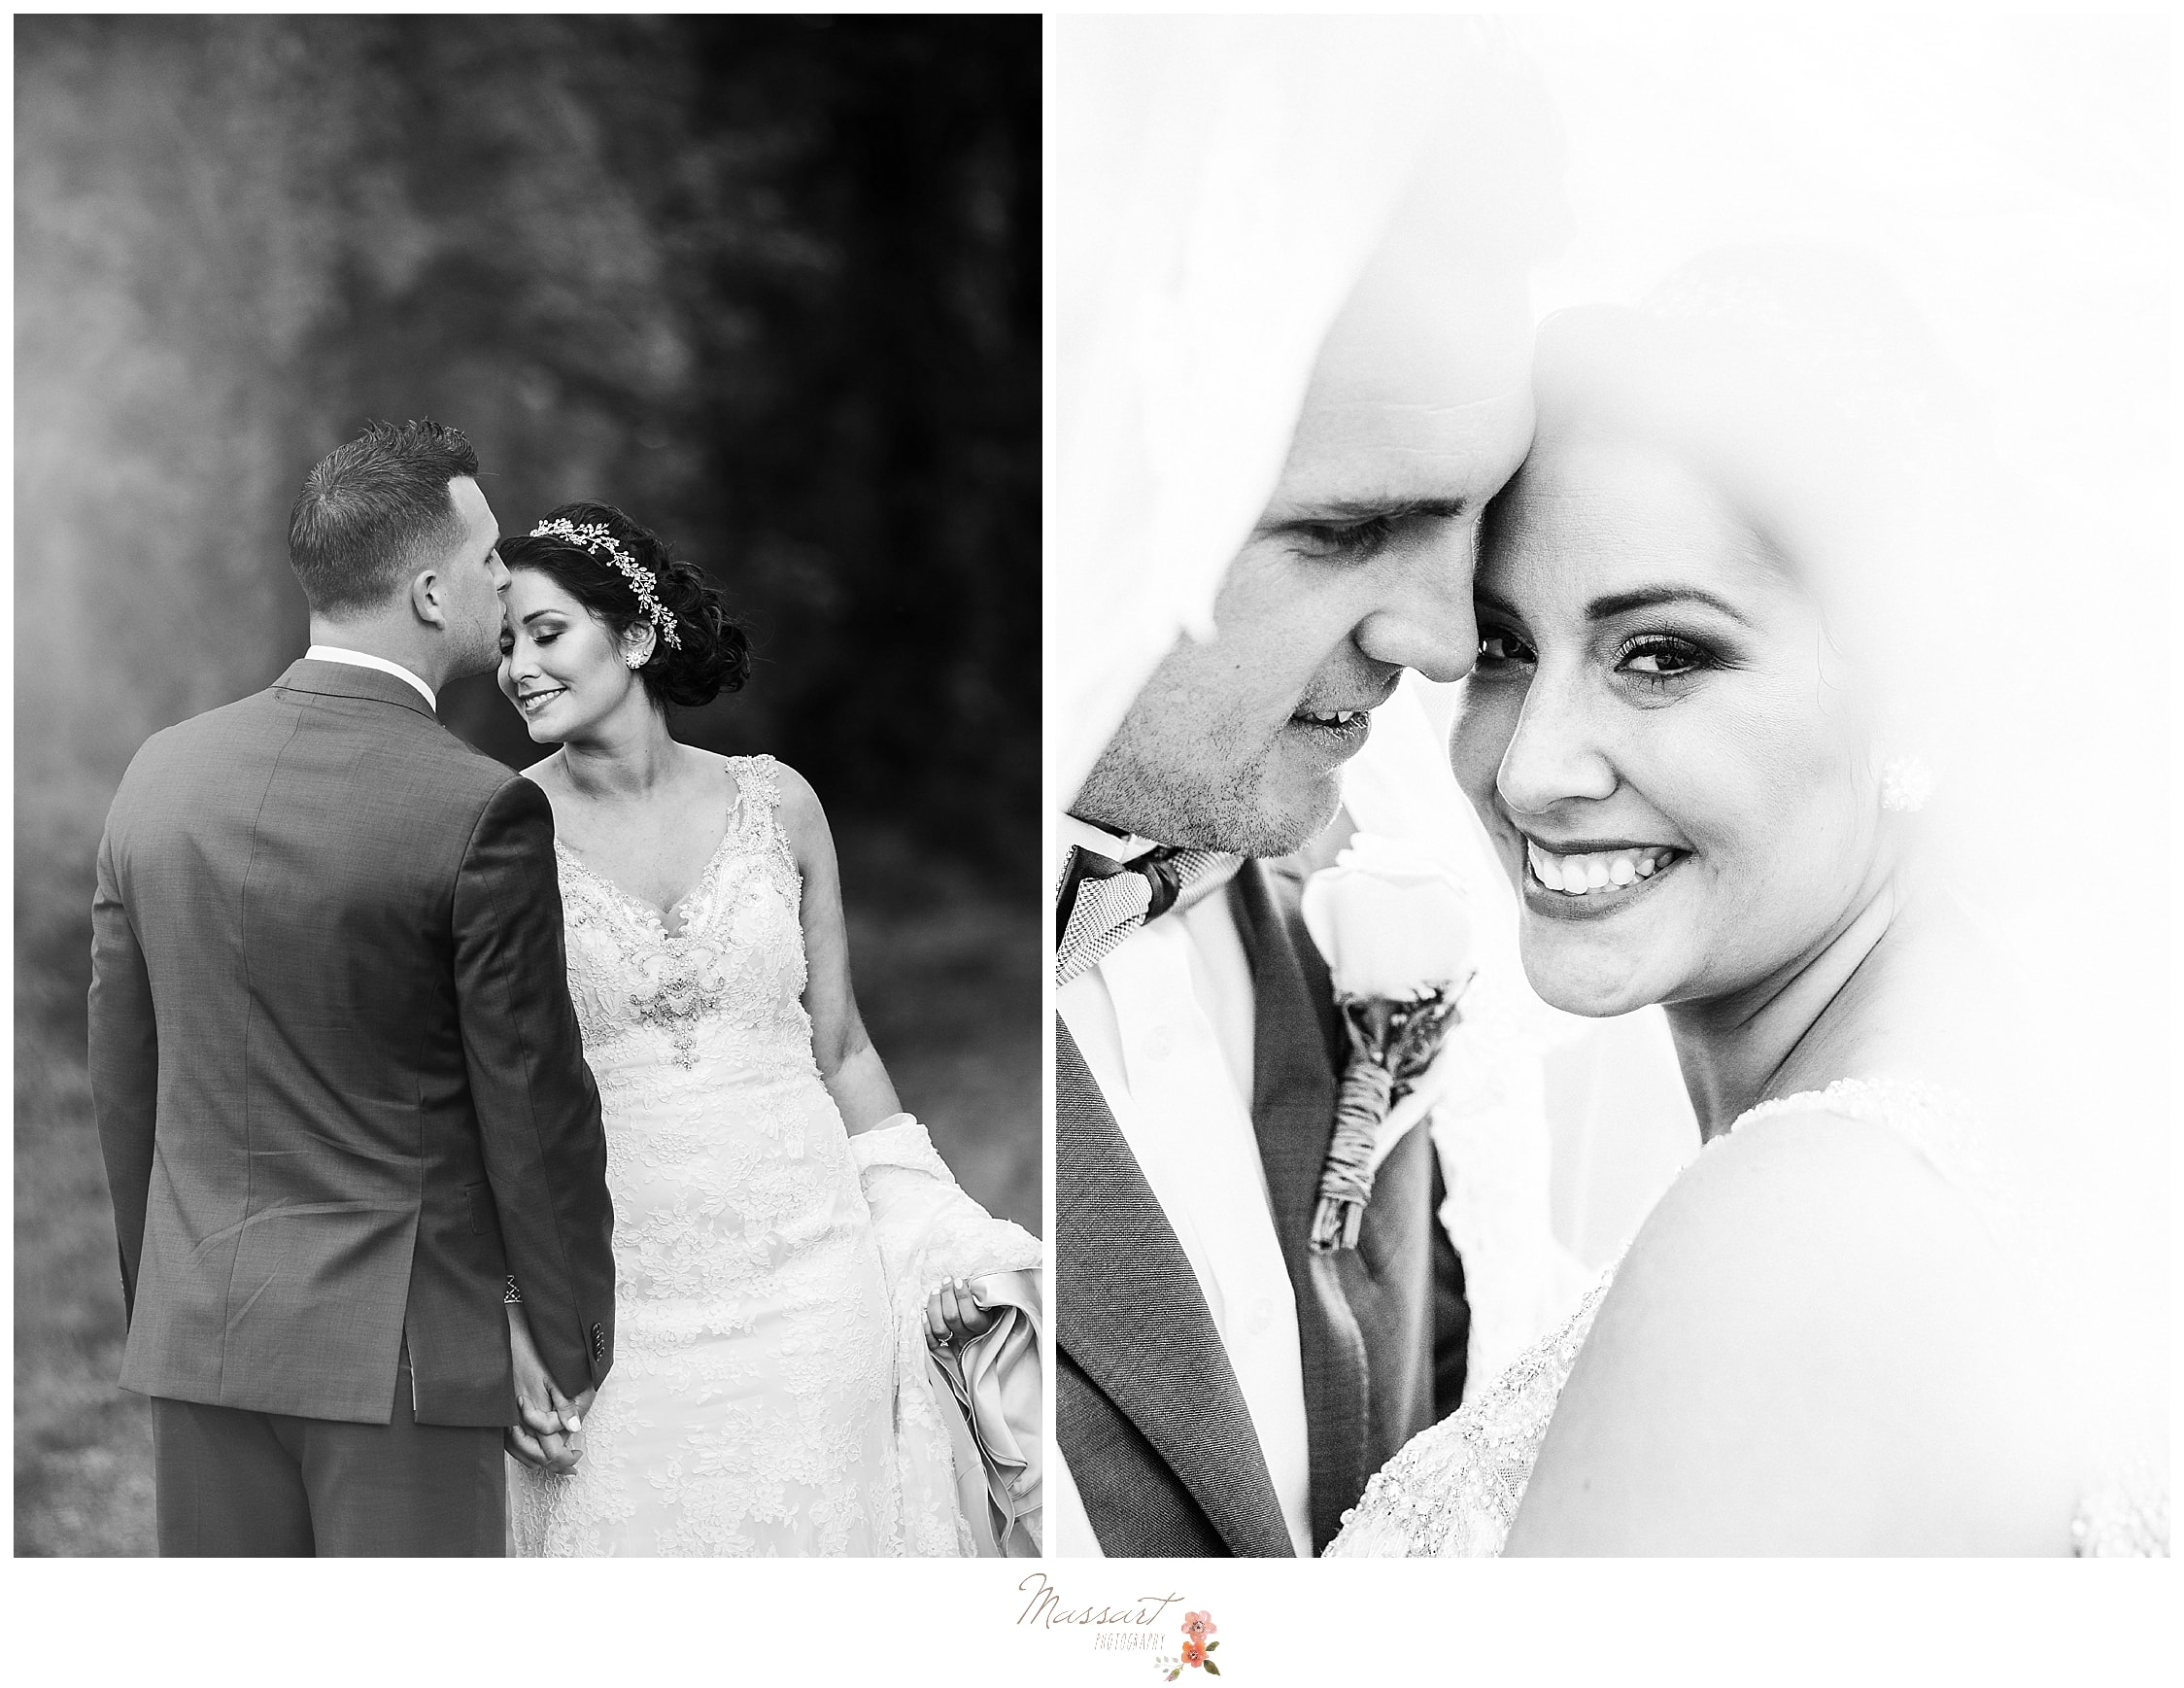 Classic black and white portraits of bride and groom at Harbor Lights in RI photographed by Massart Photography, CT wedding photographers.